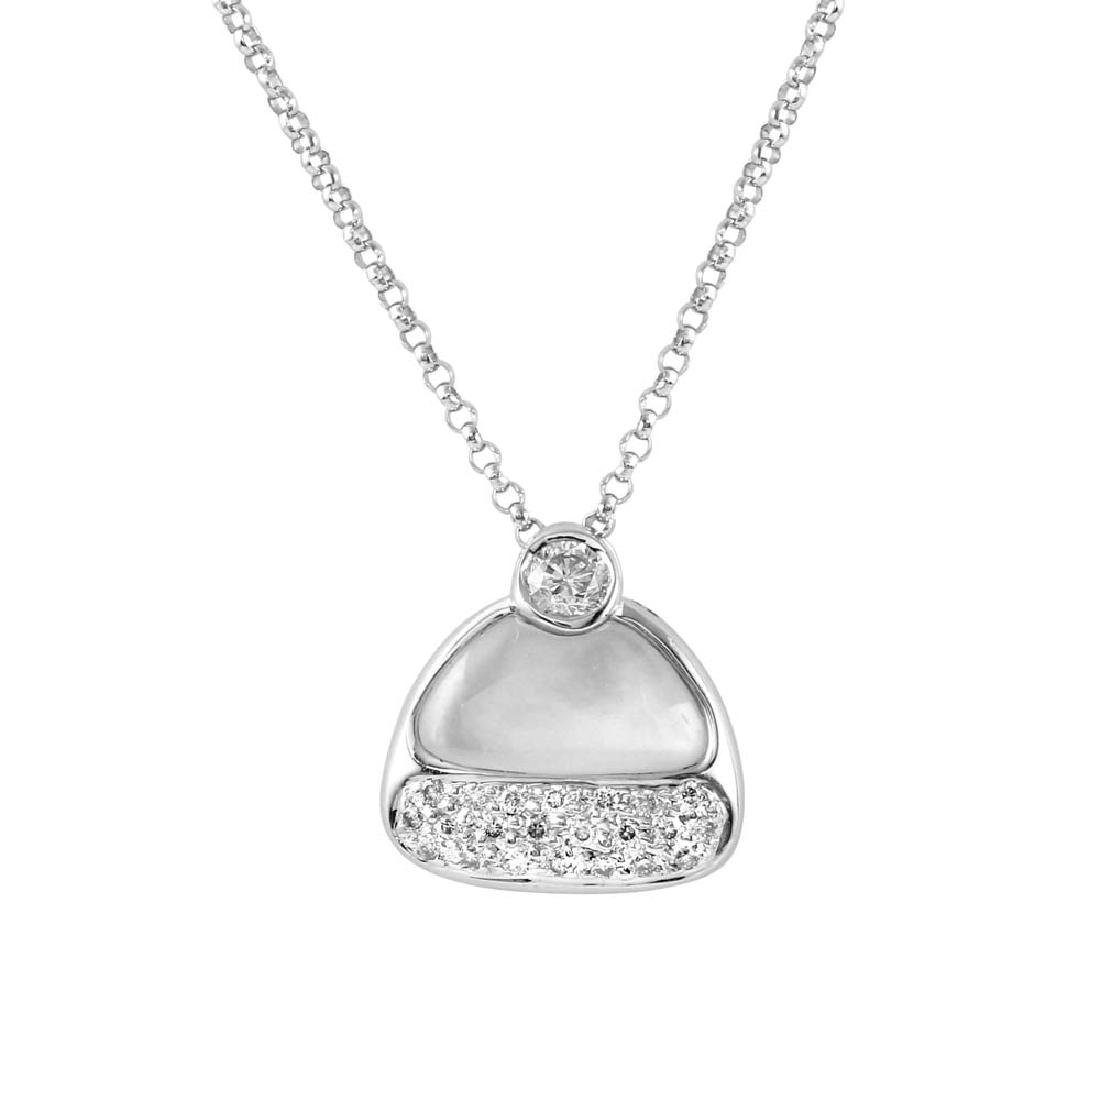 Genuine 1.03 TCW 18K White Gold Ladies Necklace